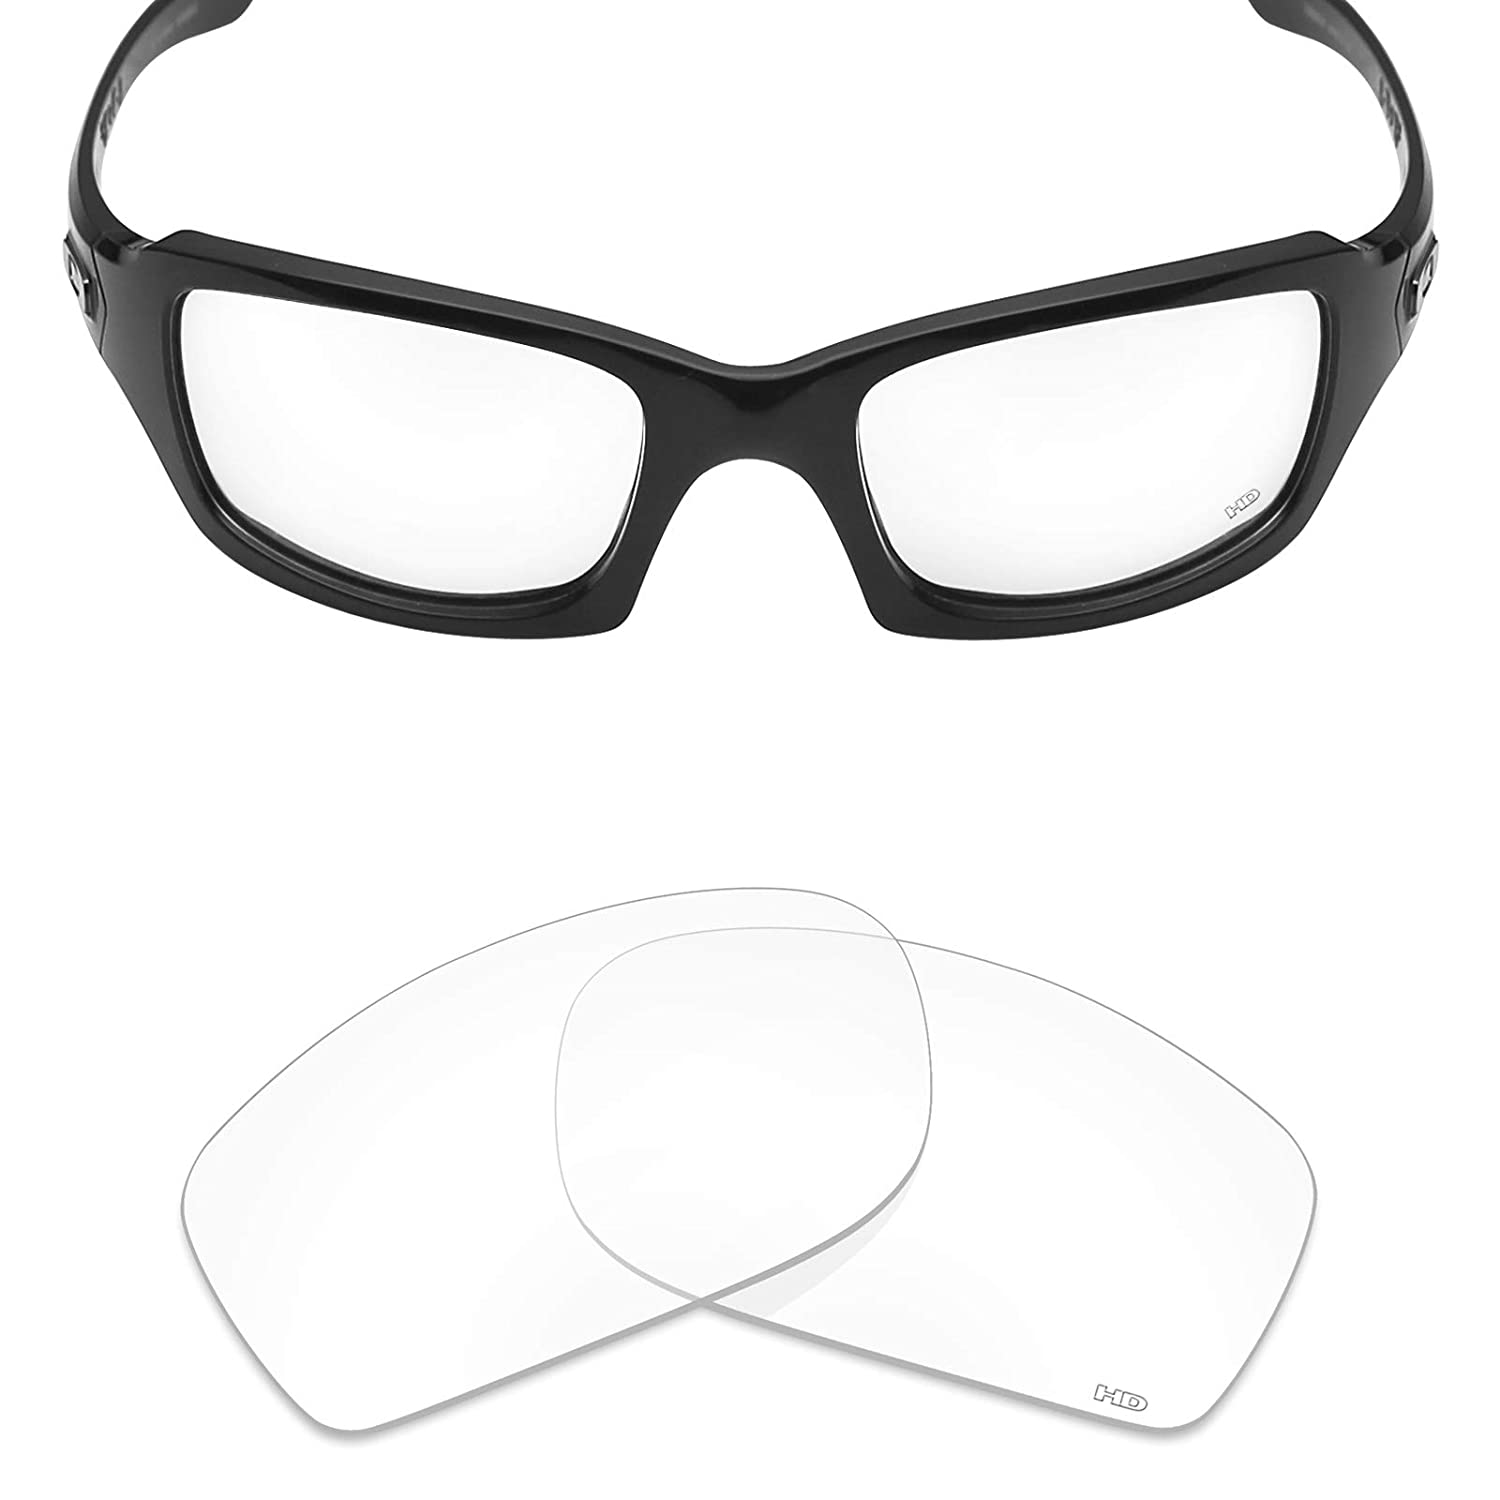 53d09203a7 Amazon.com  Mryok+ Polarized Replacement Lenses for Oakley Fives Squared -  HD Clear  Clothing